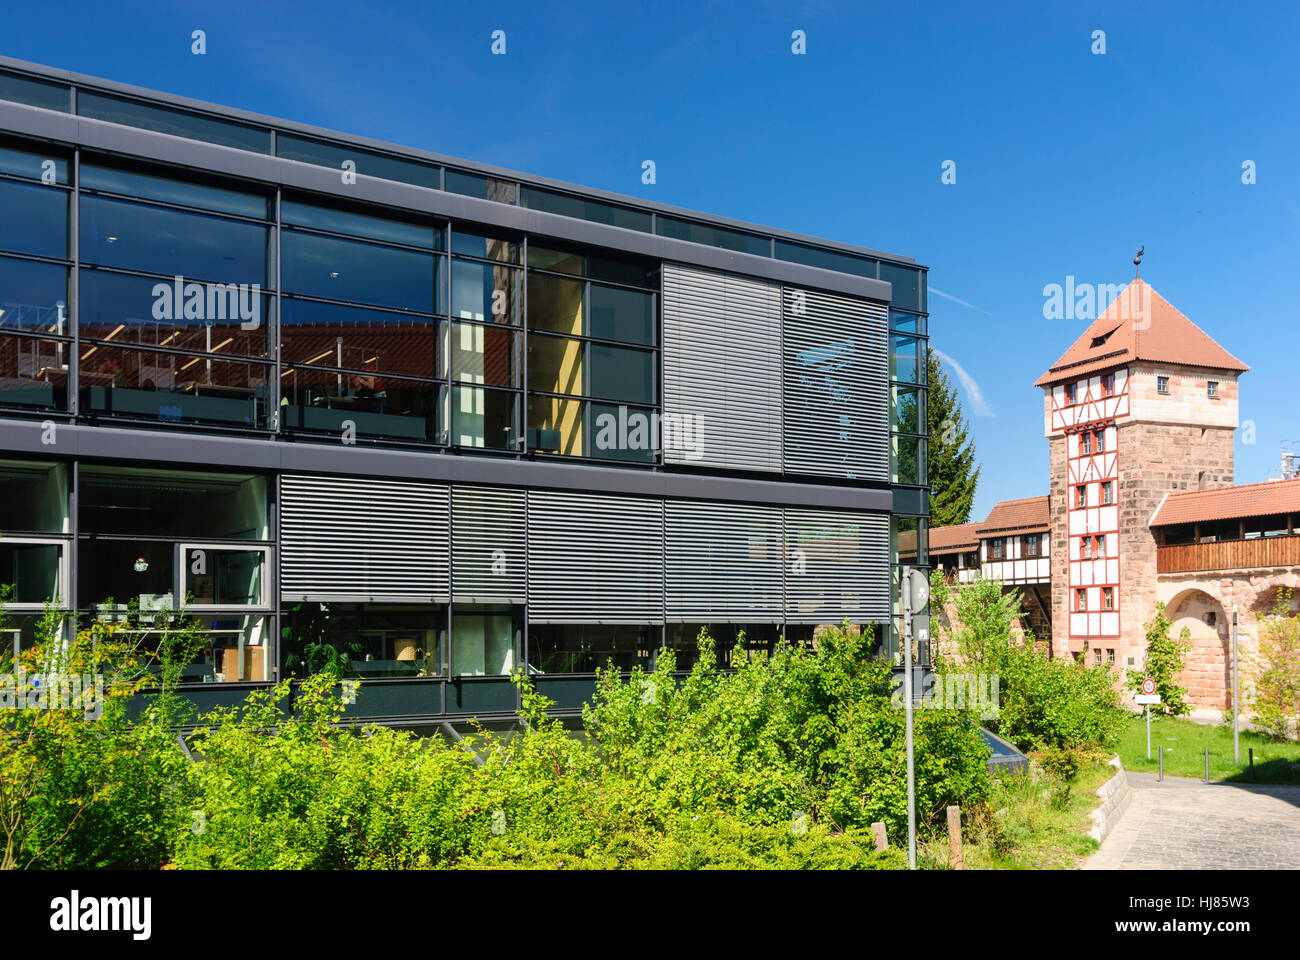 nrnberg affordable blick auf die kaiserburg in nrnberg nuremberg franconia bavaria stock photo. Black Bedroom Furniture Sets. Home Design Ideas